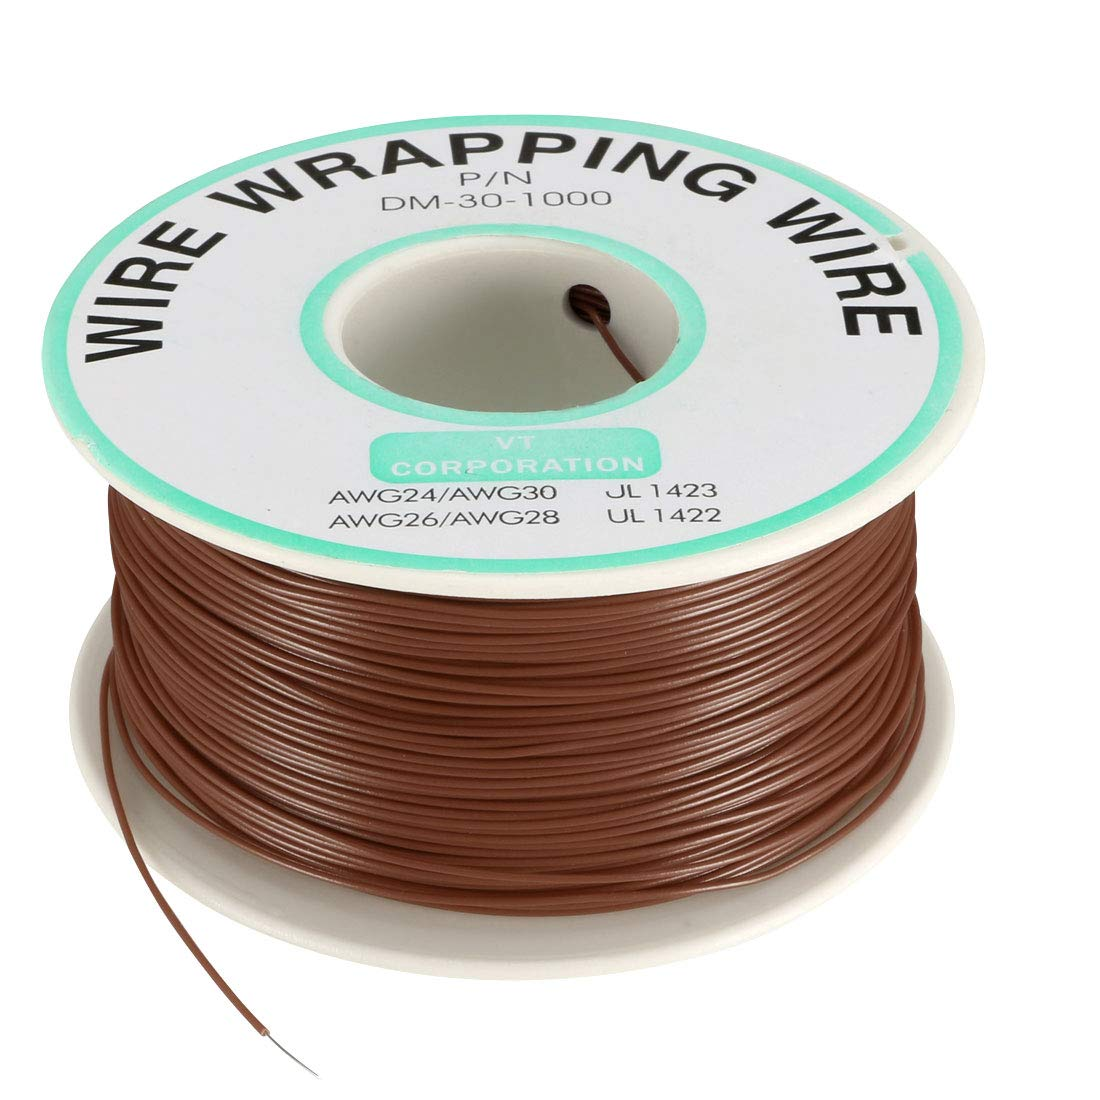 uxcell OK Wire Tin Plated Copper Cord Wire Wrapping P//N DM-30-1000 30 AWG 820ft Length White